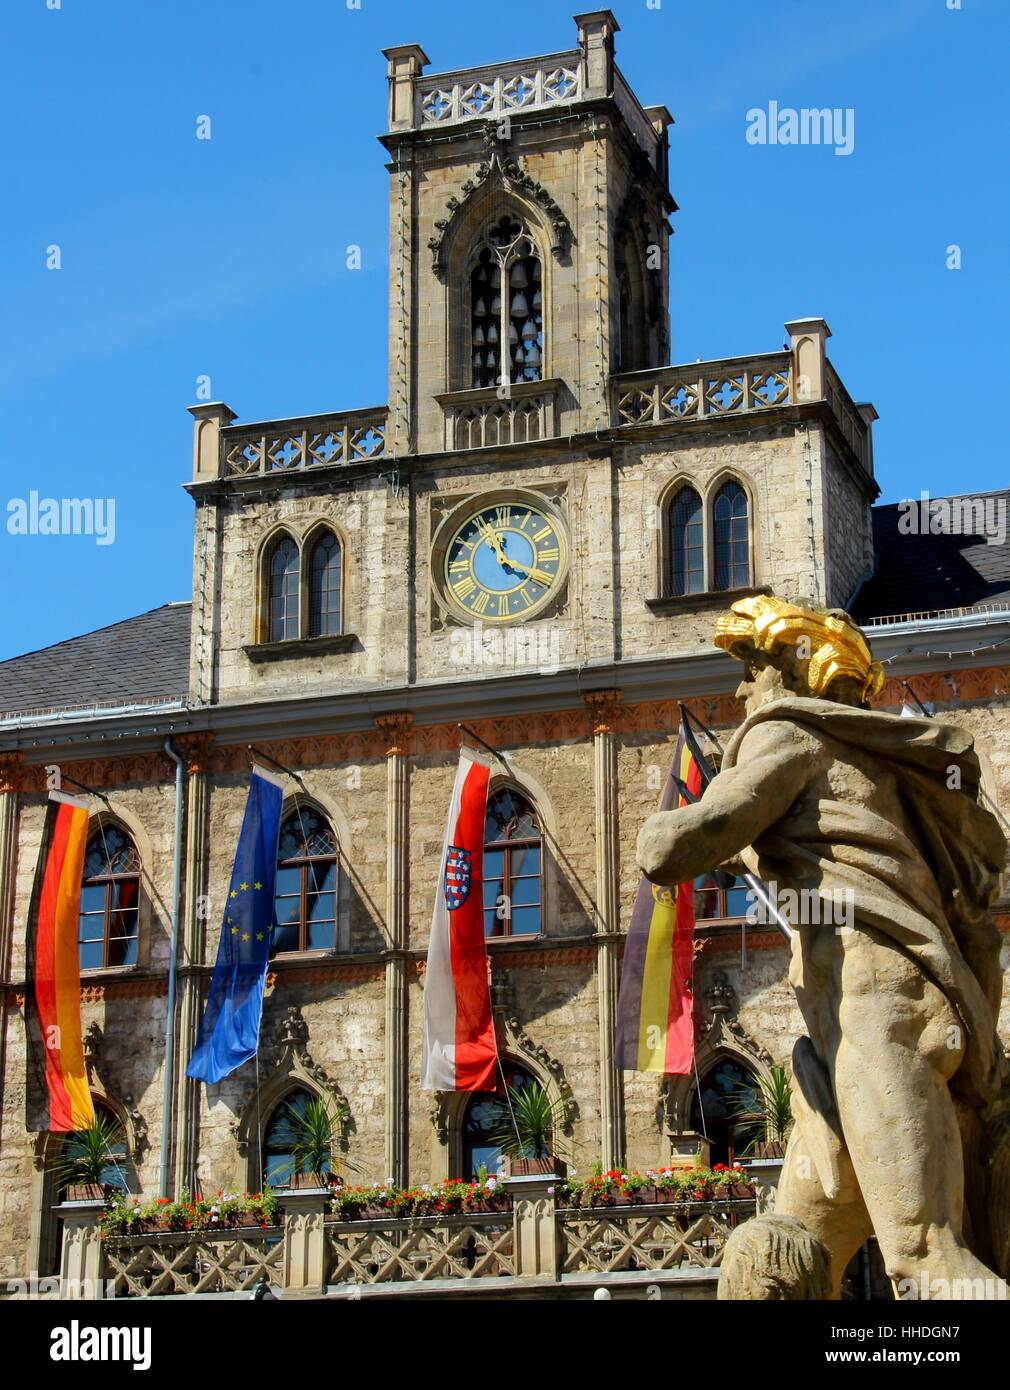 sightseeing, town hall, style of construction, architecture, architectural Stock Photo